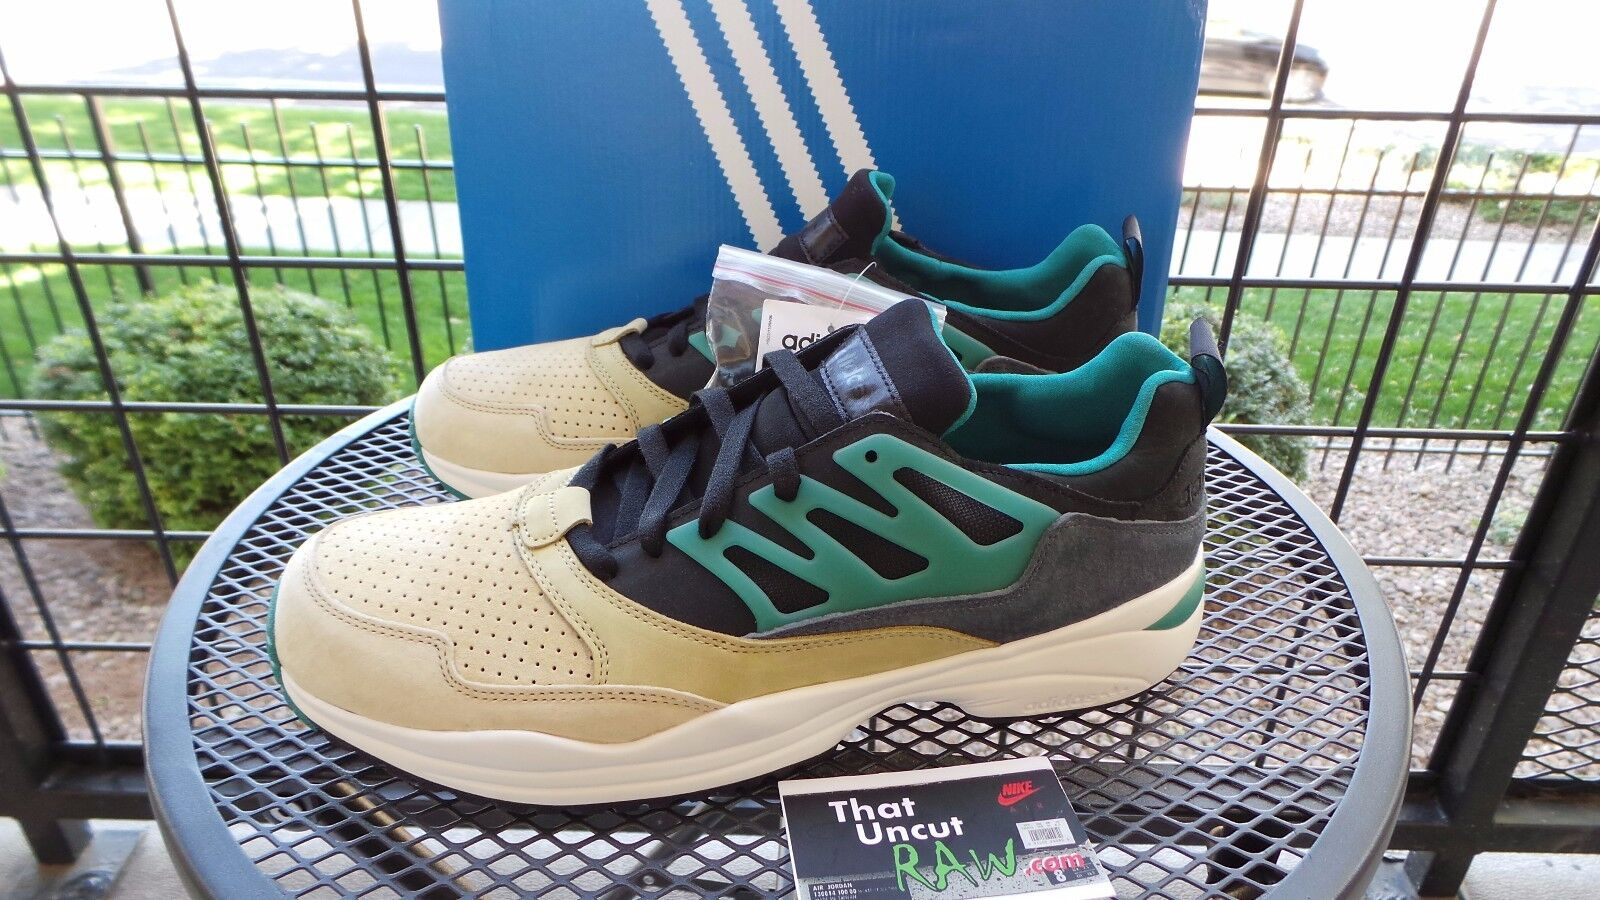 Mita x adidas torsion allegra mt, Größe 10.5, 10.5, 10.5, ds, 100% authentic guaranteed 22716e